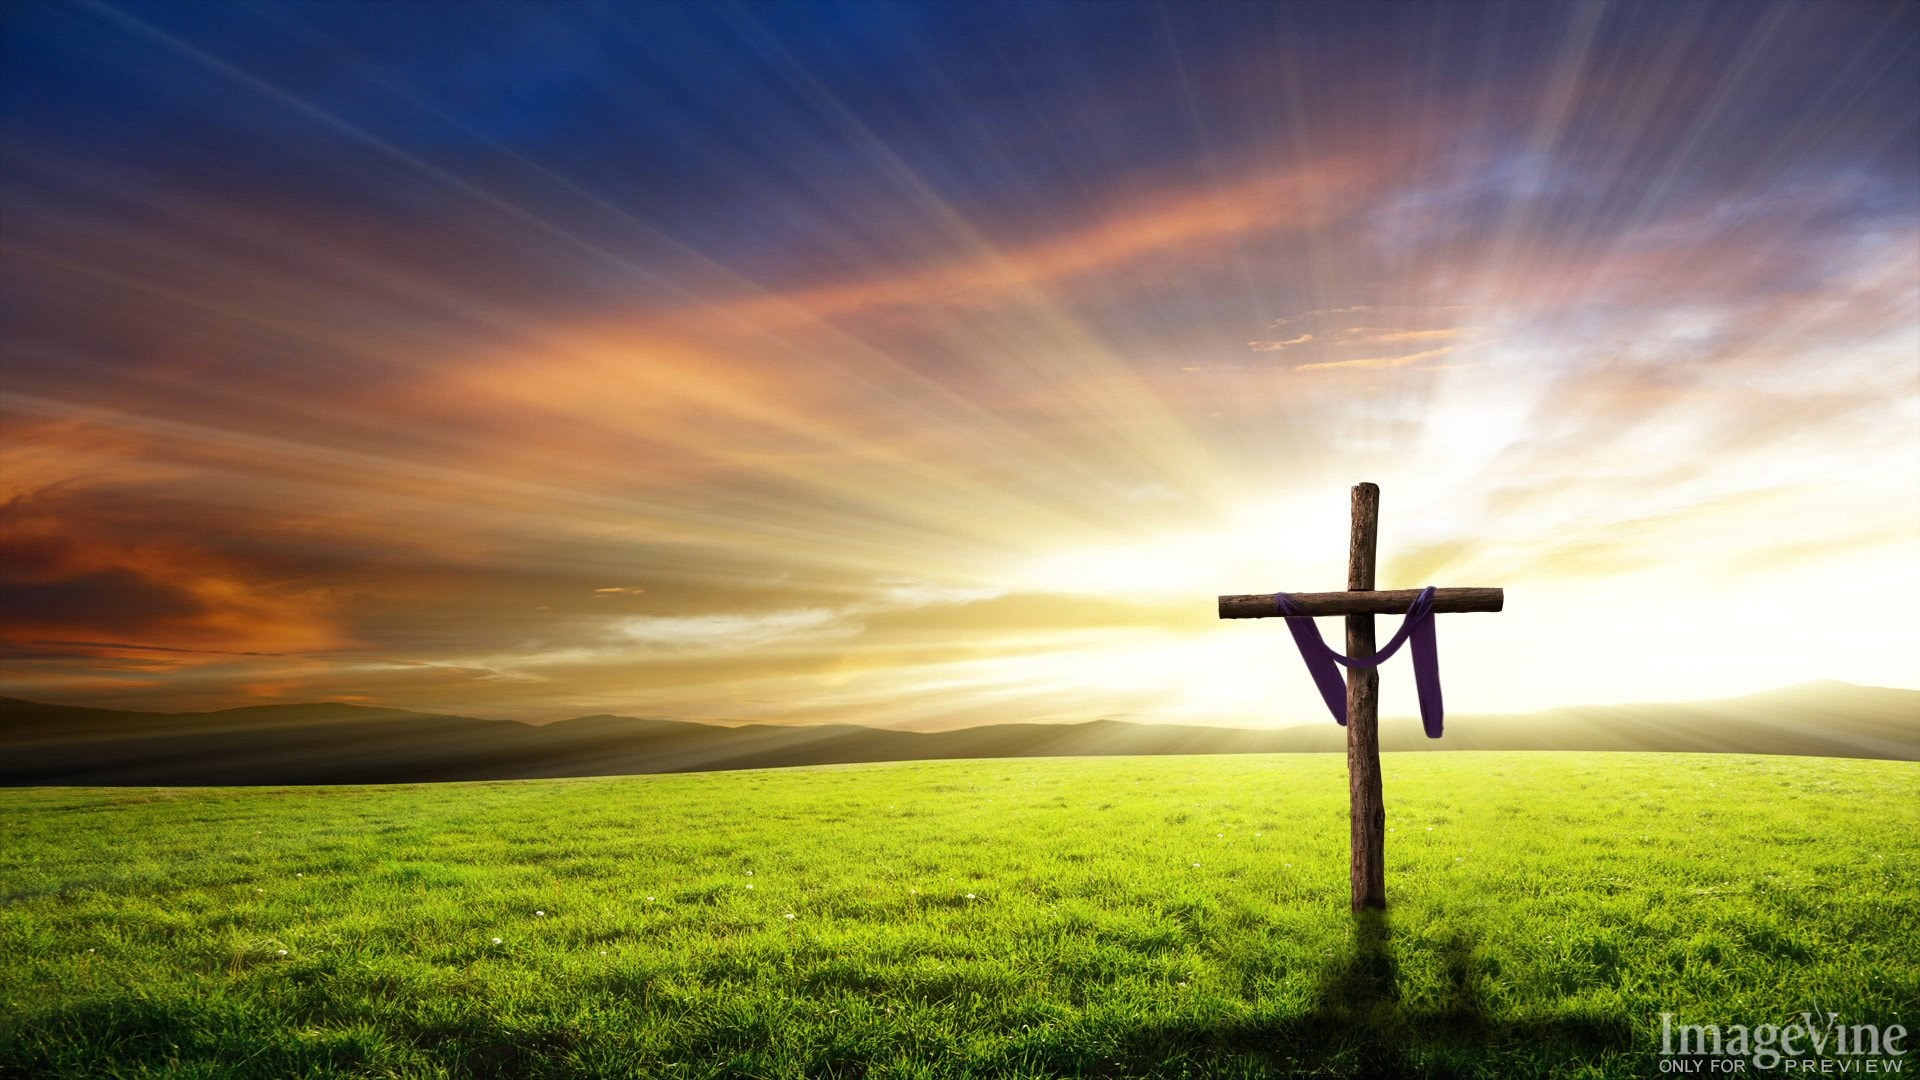 Christian background images wallpapertag - Christian easter images free ...